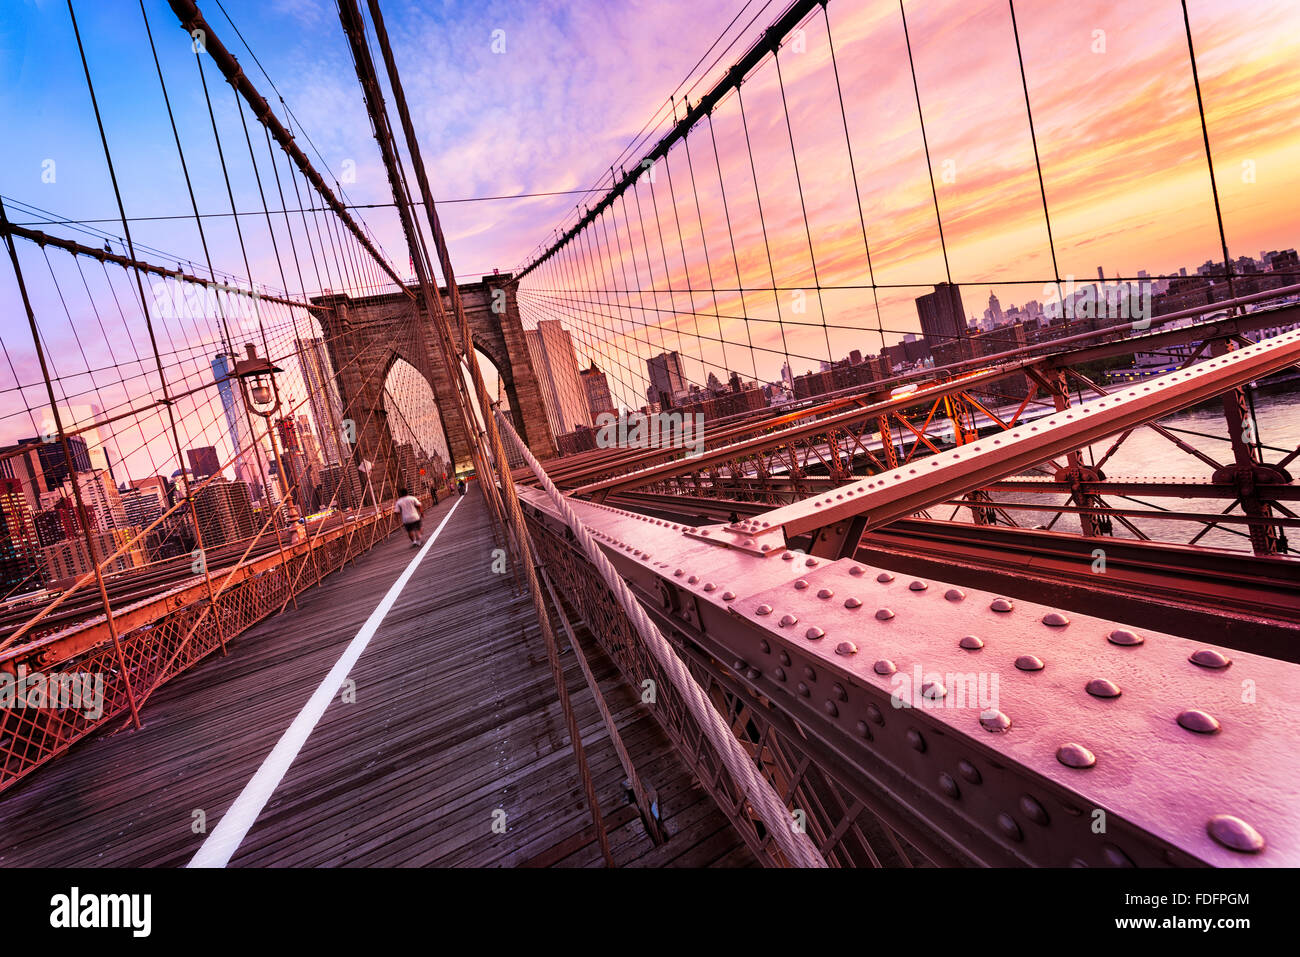 New York City, USA, early in the morning on the famous Brooklyn Bridge - Stock Image